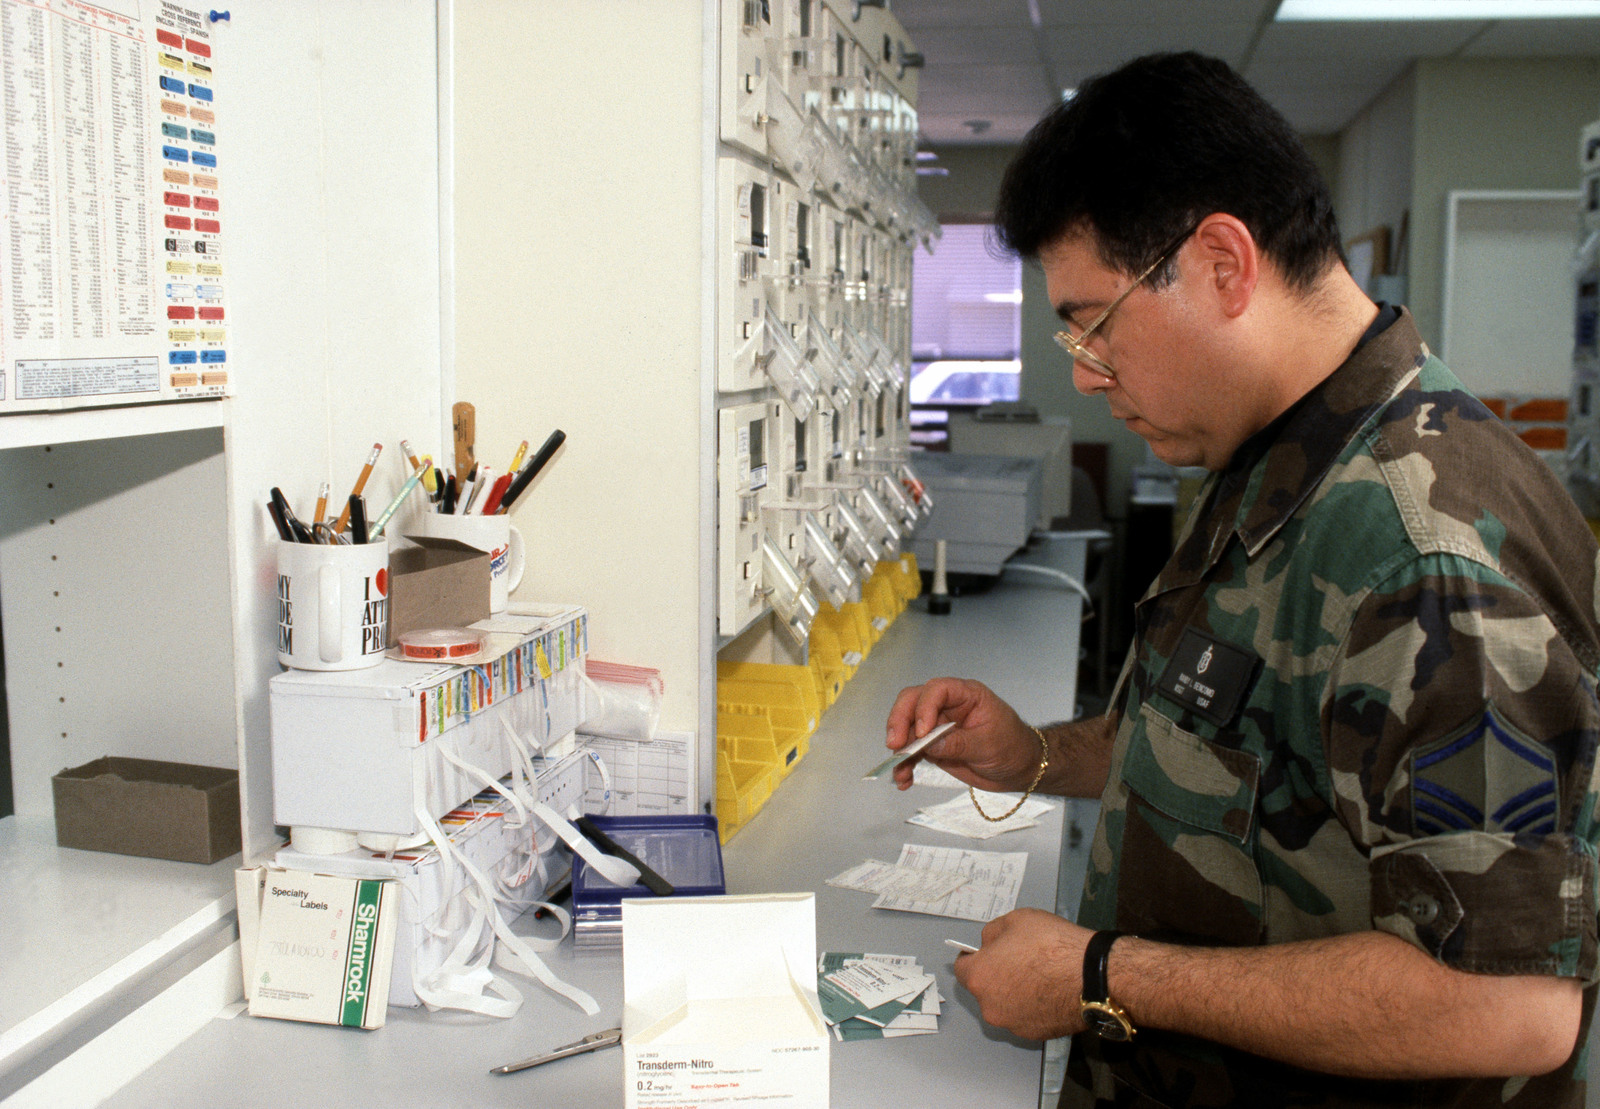 In the pharmacy at the Los Angeles Air Force Base clinic, MASTER Sergeant Randy L. Bencomo with the 61st Medical Squadron fills one of many prescriptions